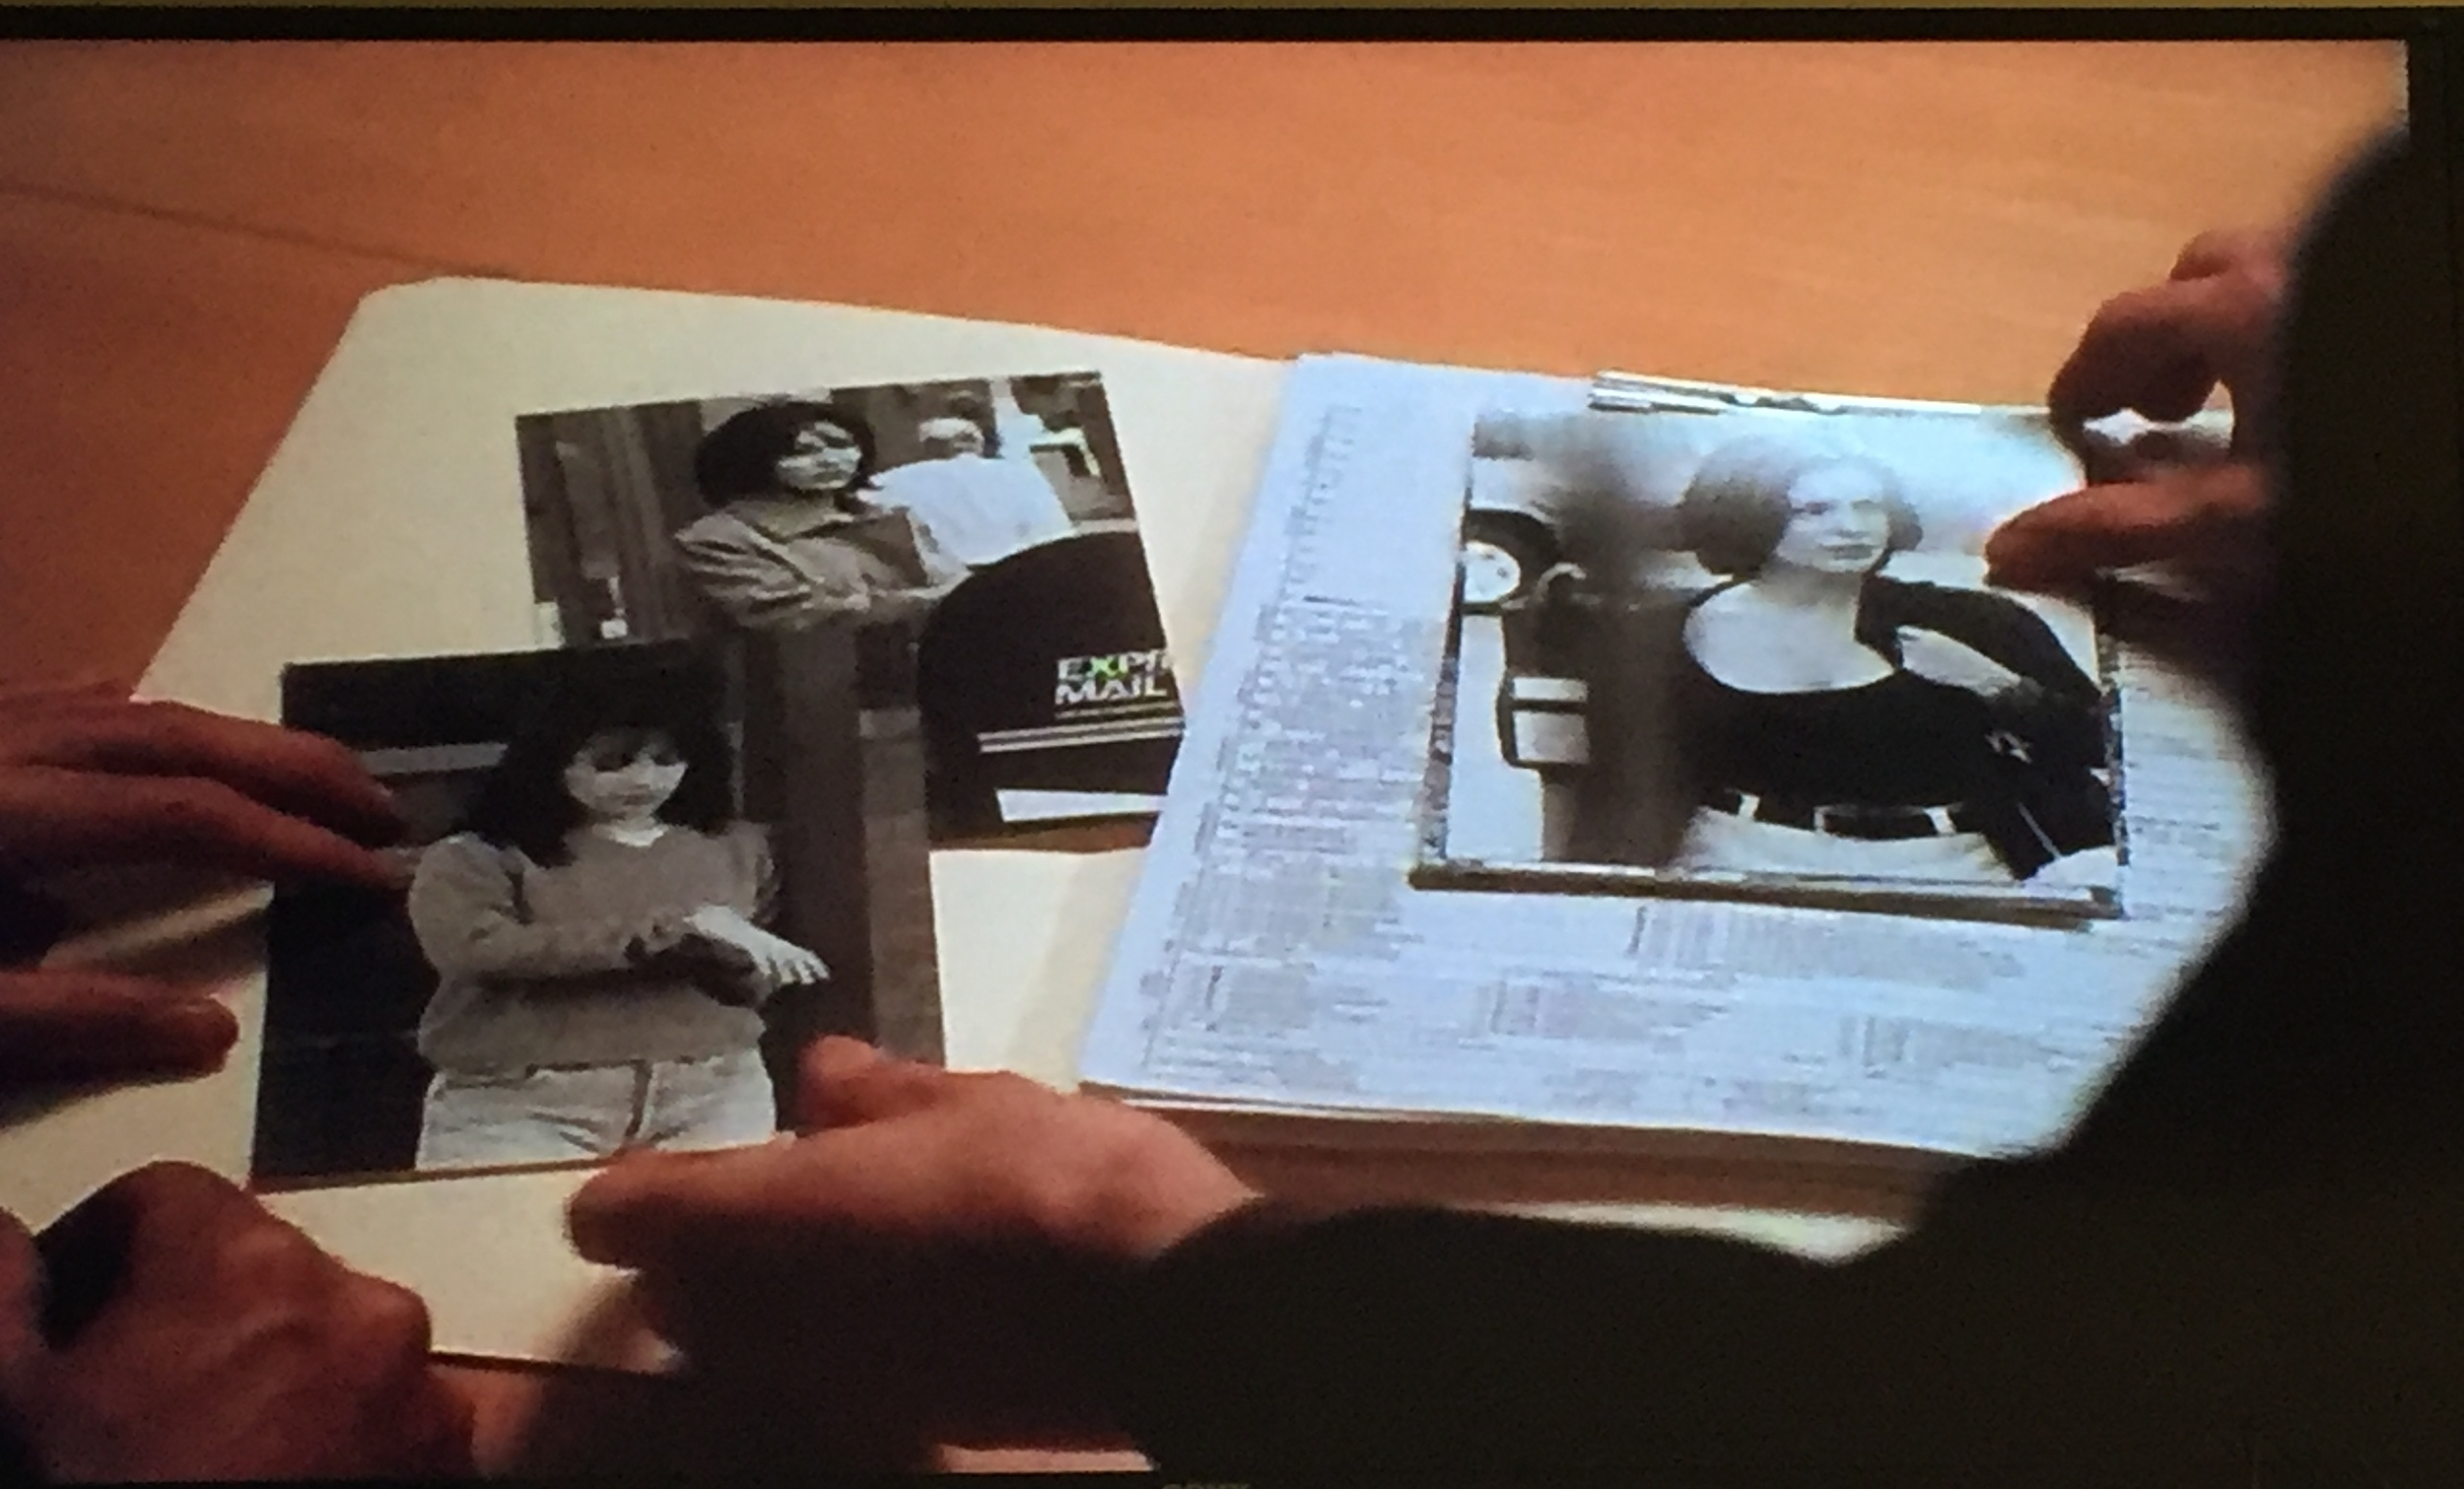 These are the pictures that Rex shows Matthew. The ones of Phoebe and Piper will be seen again in a future episode.